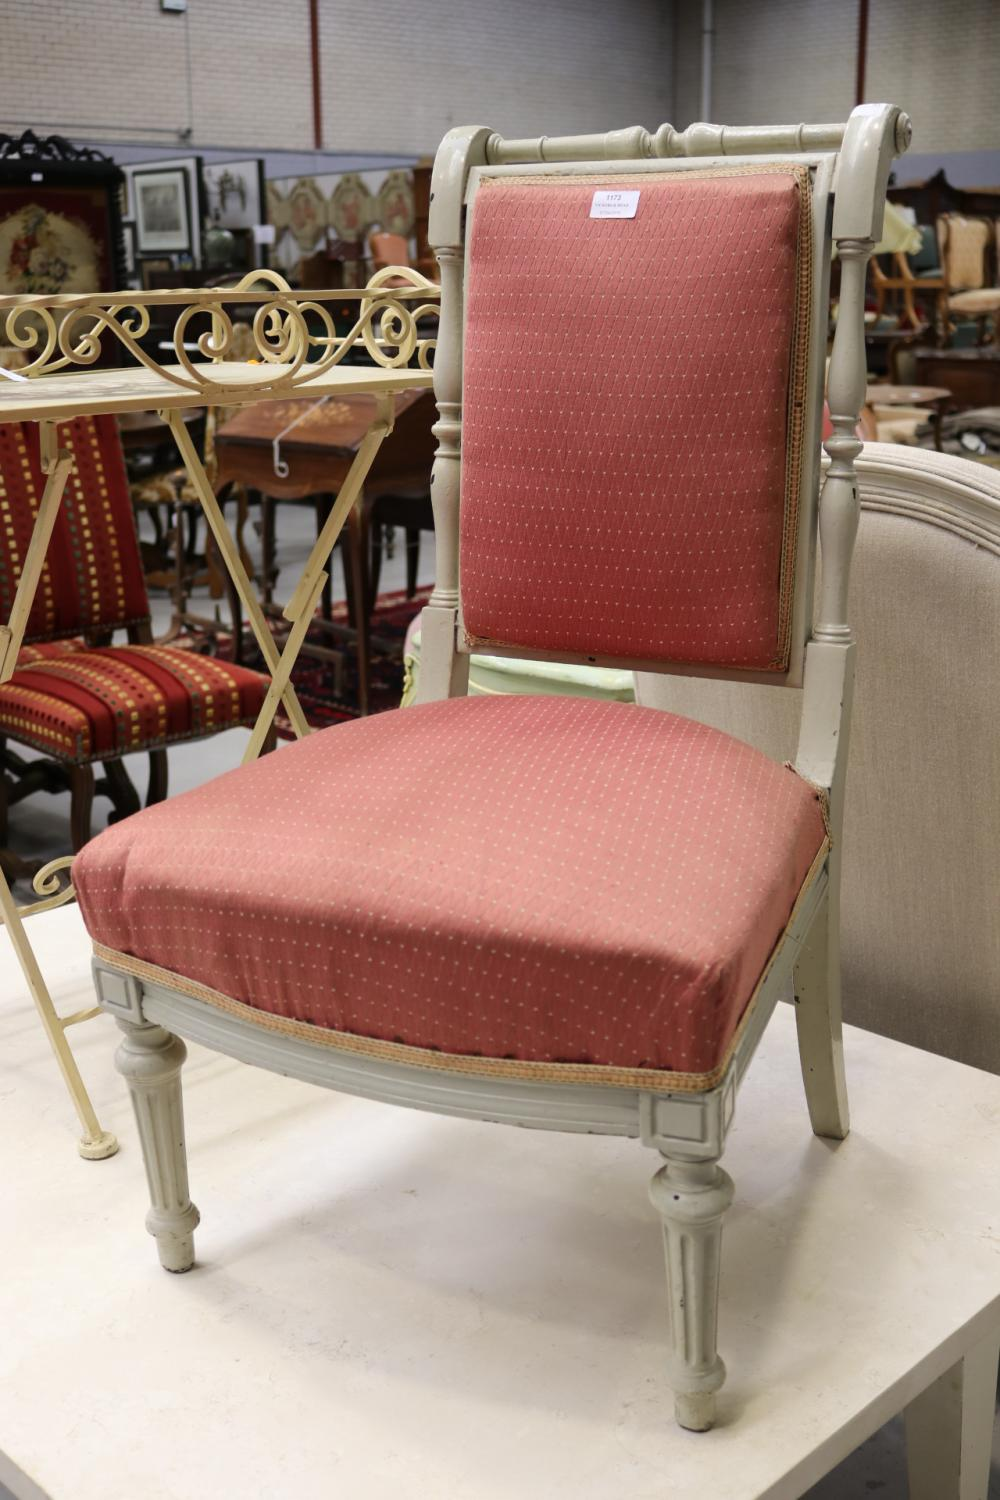 Antique French Louis XVI style white frame bedroom chair